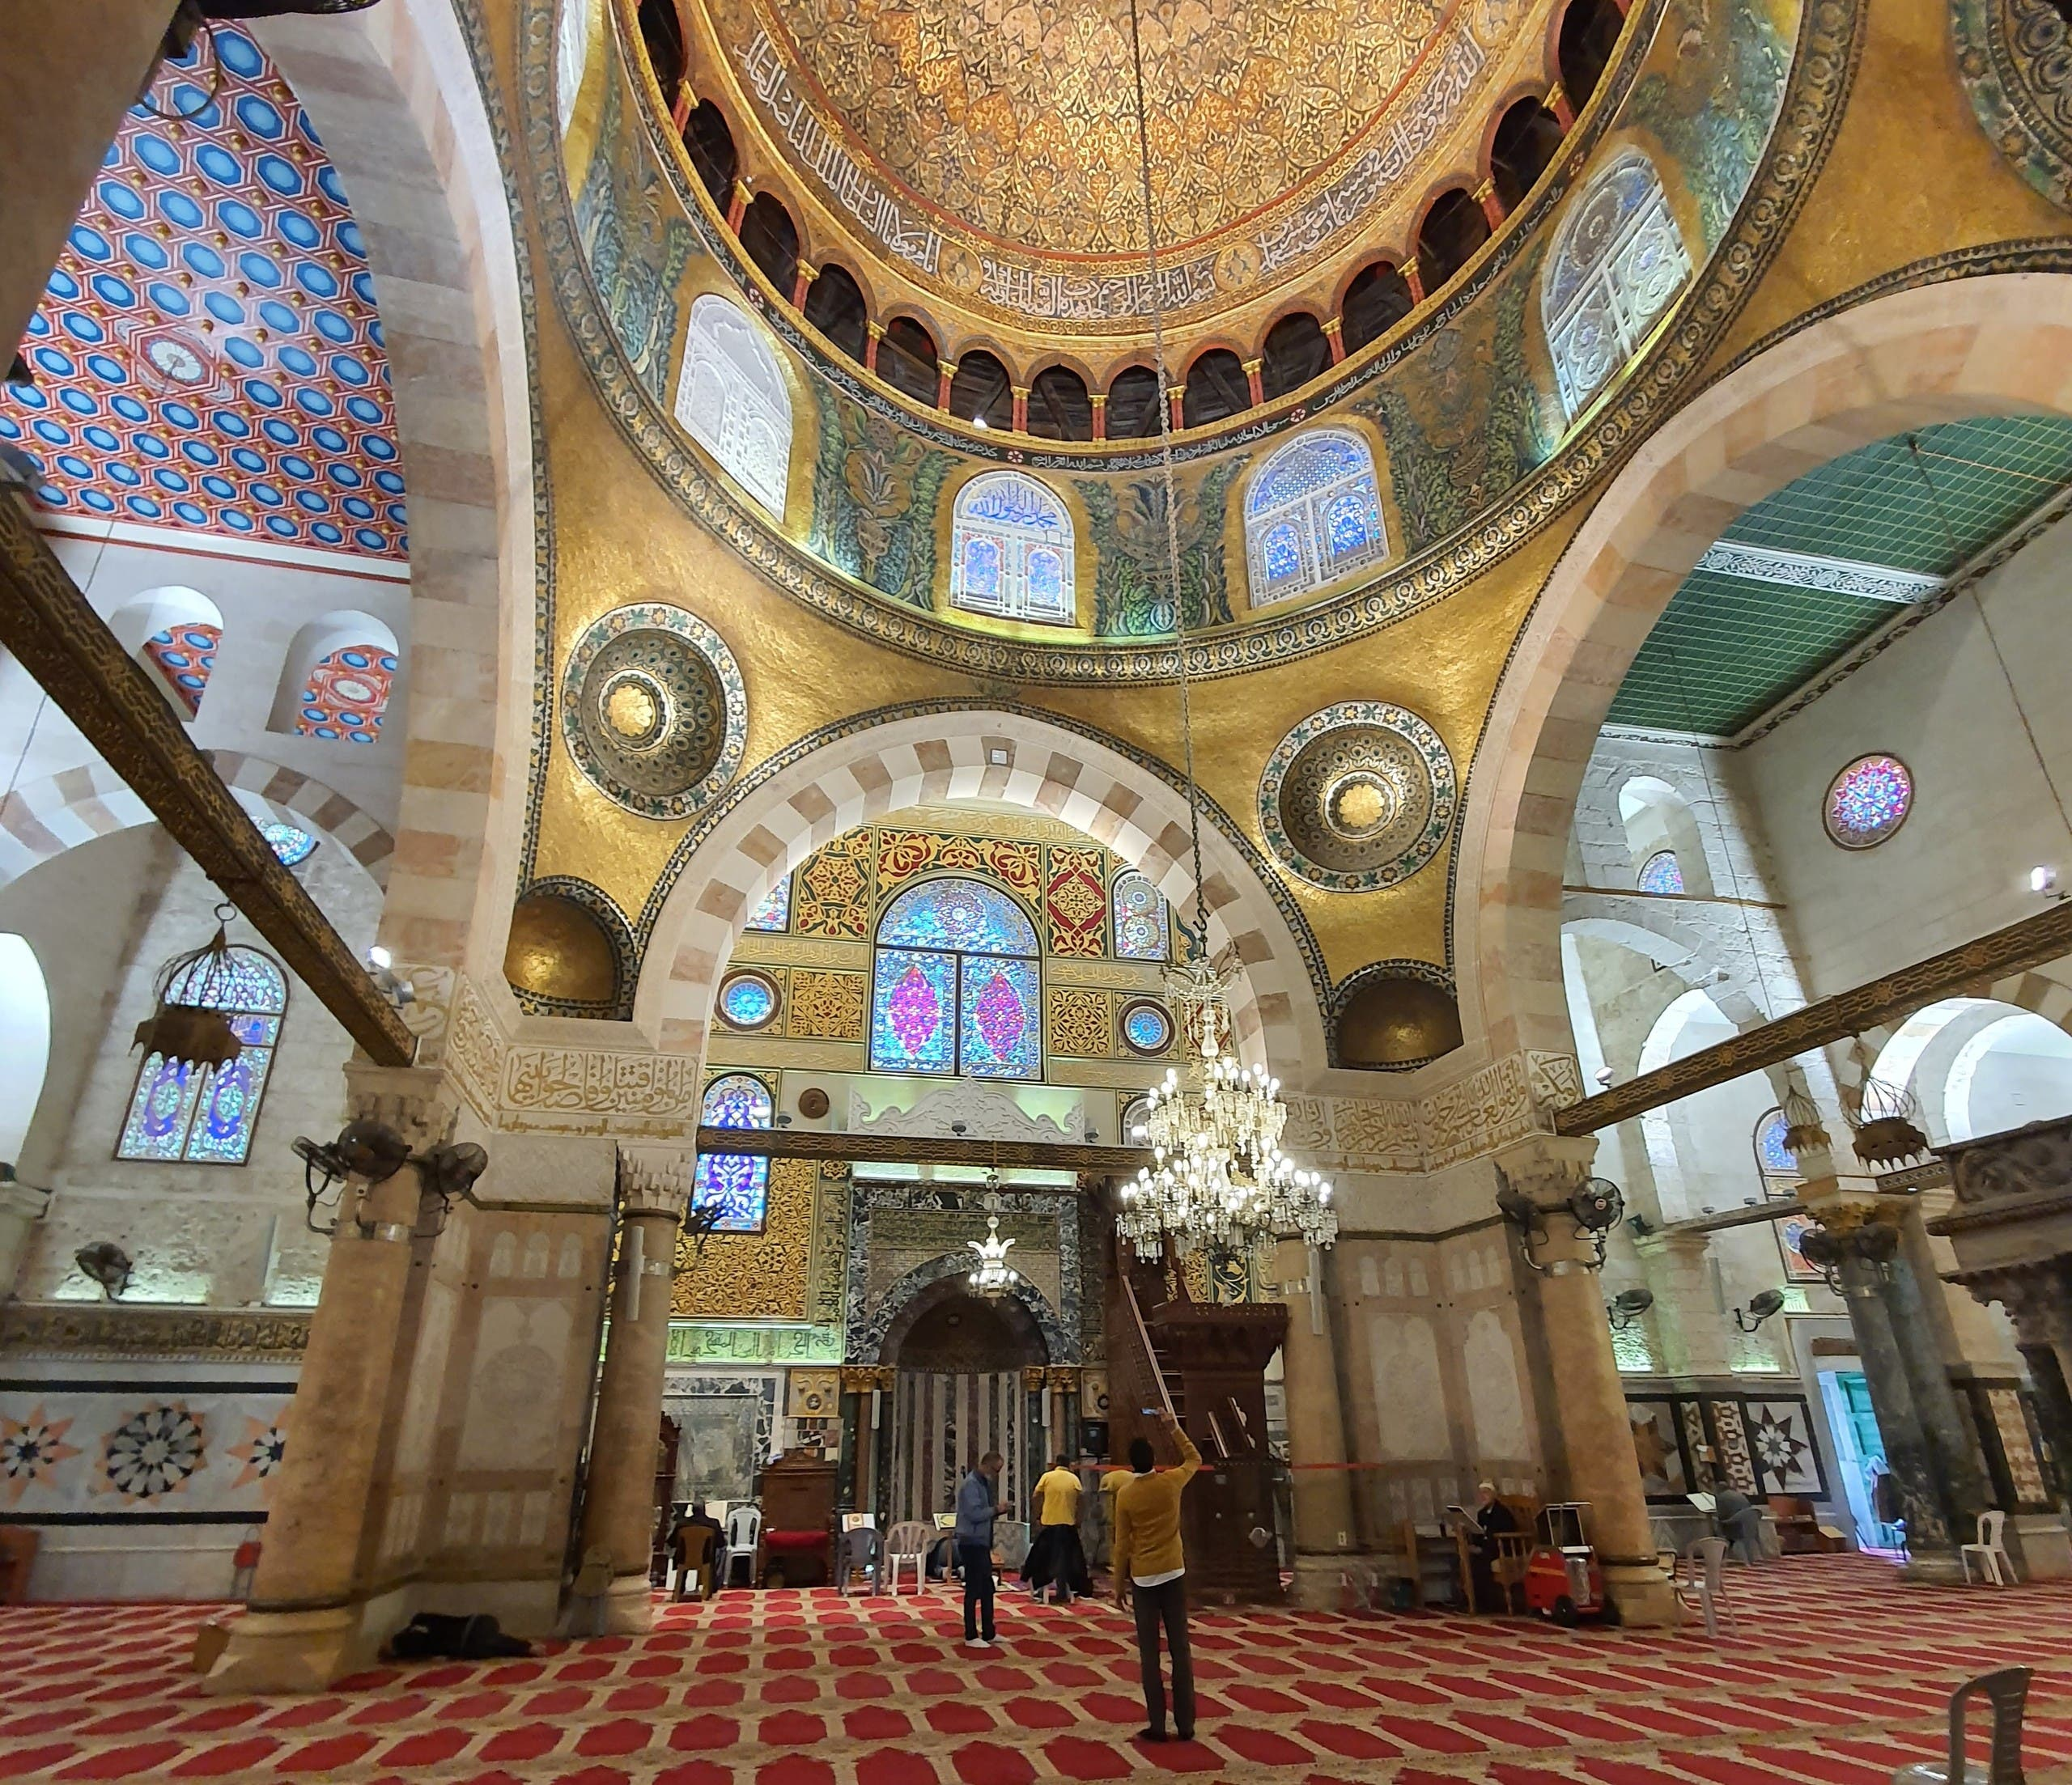 Emiratis take photos of a mosque in the Al Aqsa compound in East Jerusalem. (Supplied)